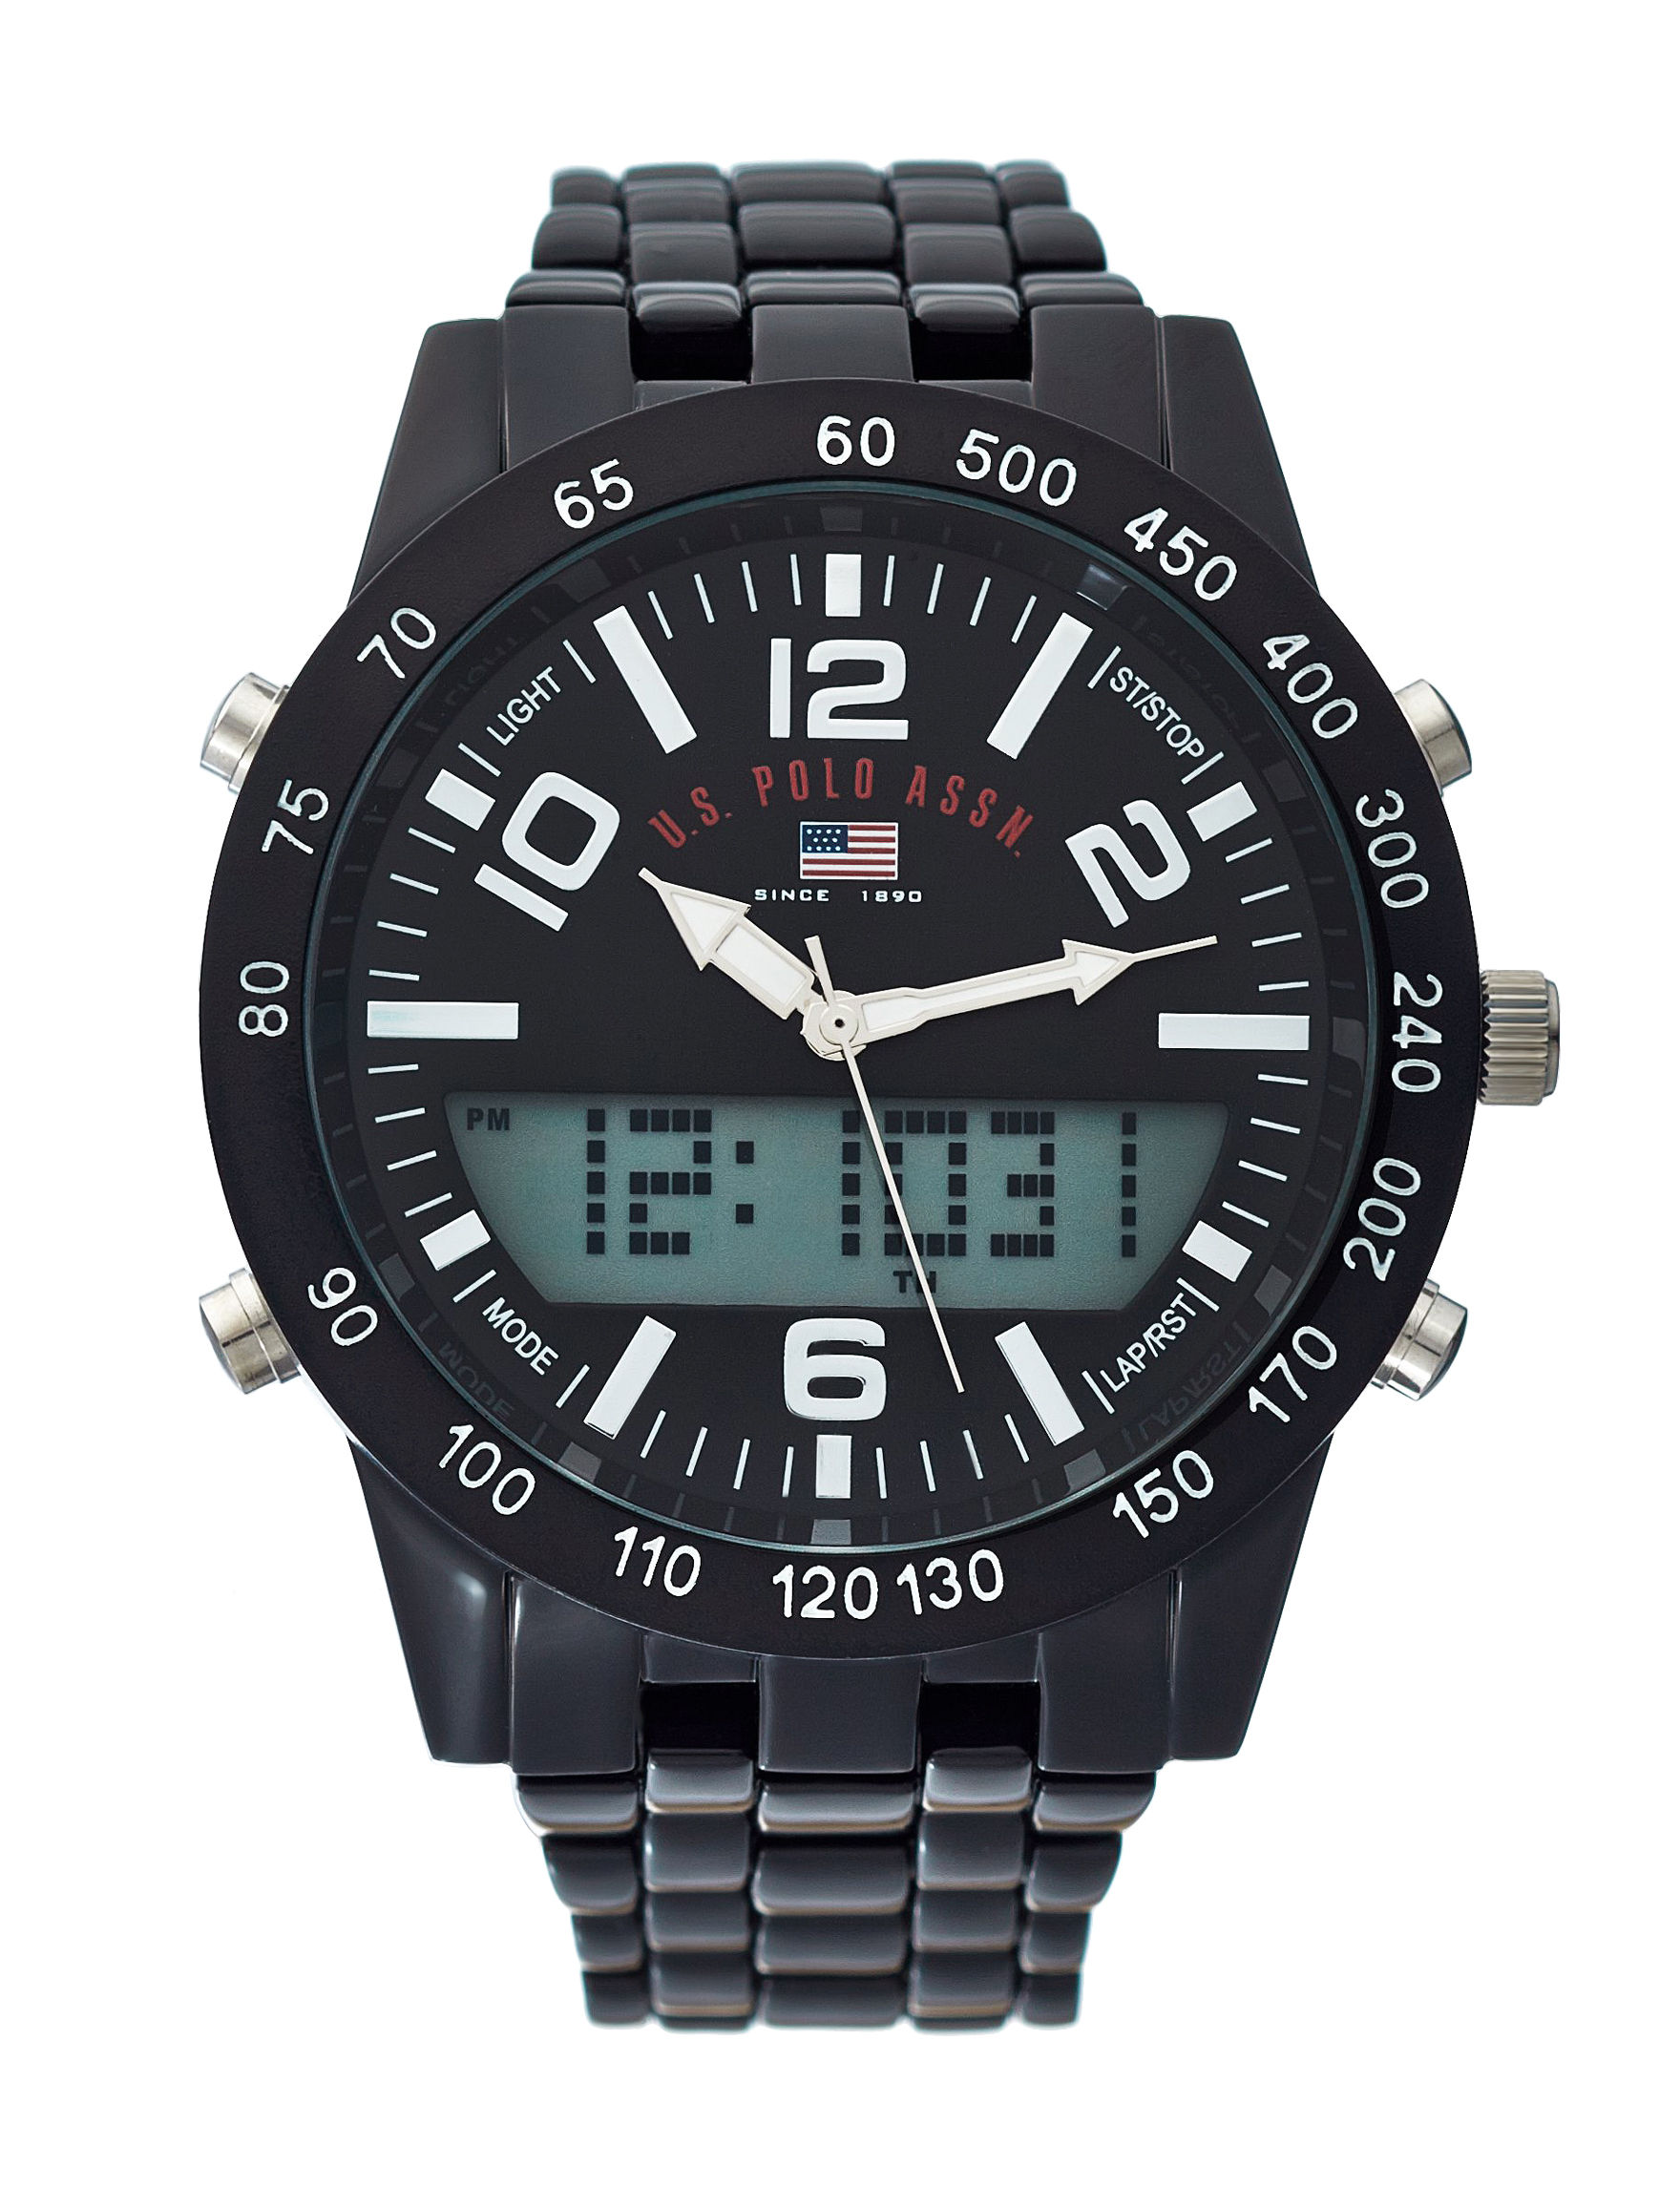 U.S. Polo Assn. Black Fashion Watches